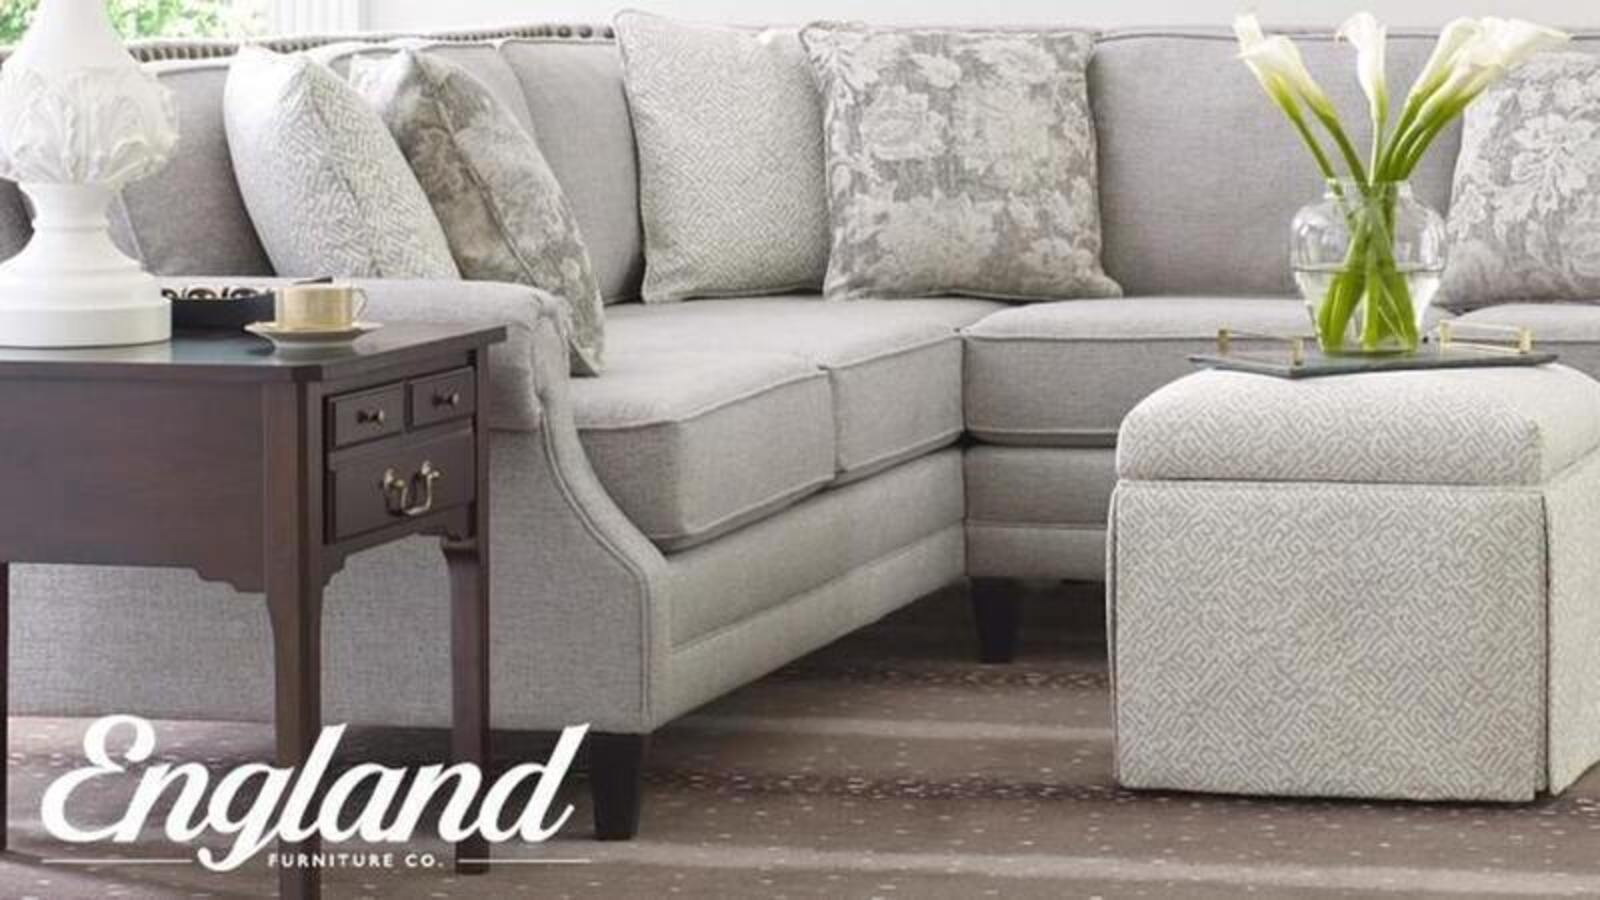 England Furniture: Made in Tennessee - featured 2